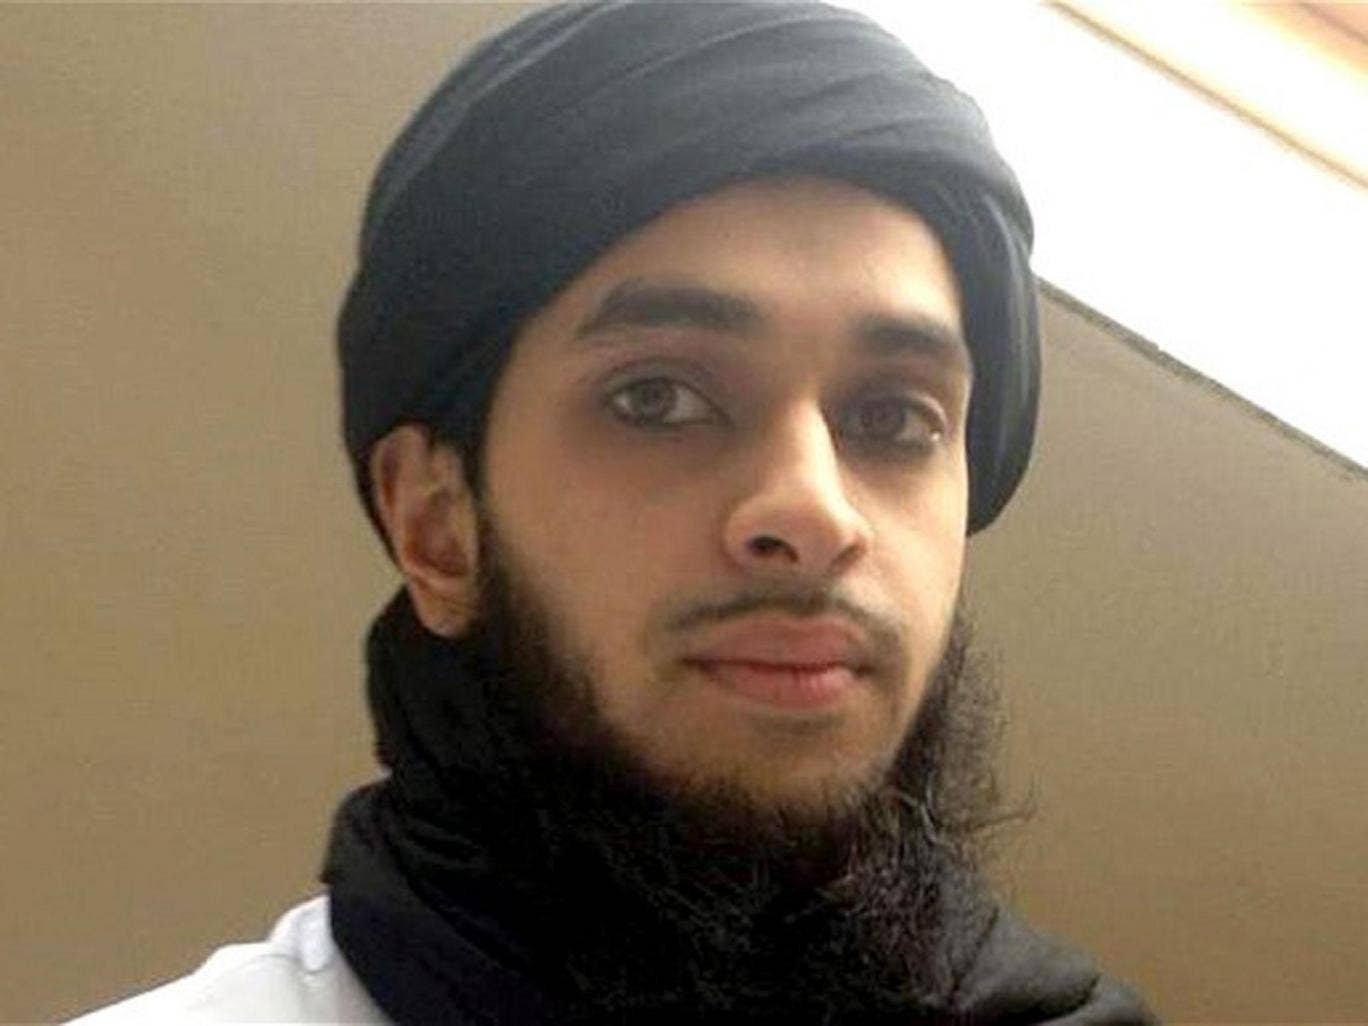 Muhammad Hamidur Rahman, 25, a former Primark worker from Portsmouth, was reportedly killed while fighting in the troubled country after being recruited by the terror group ISIS.